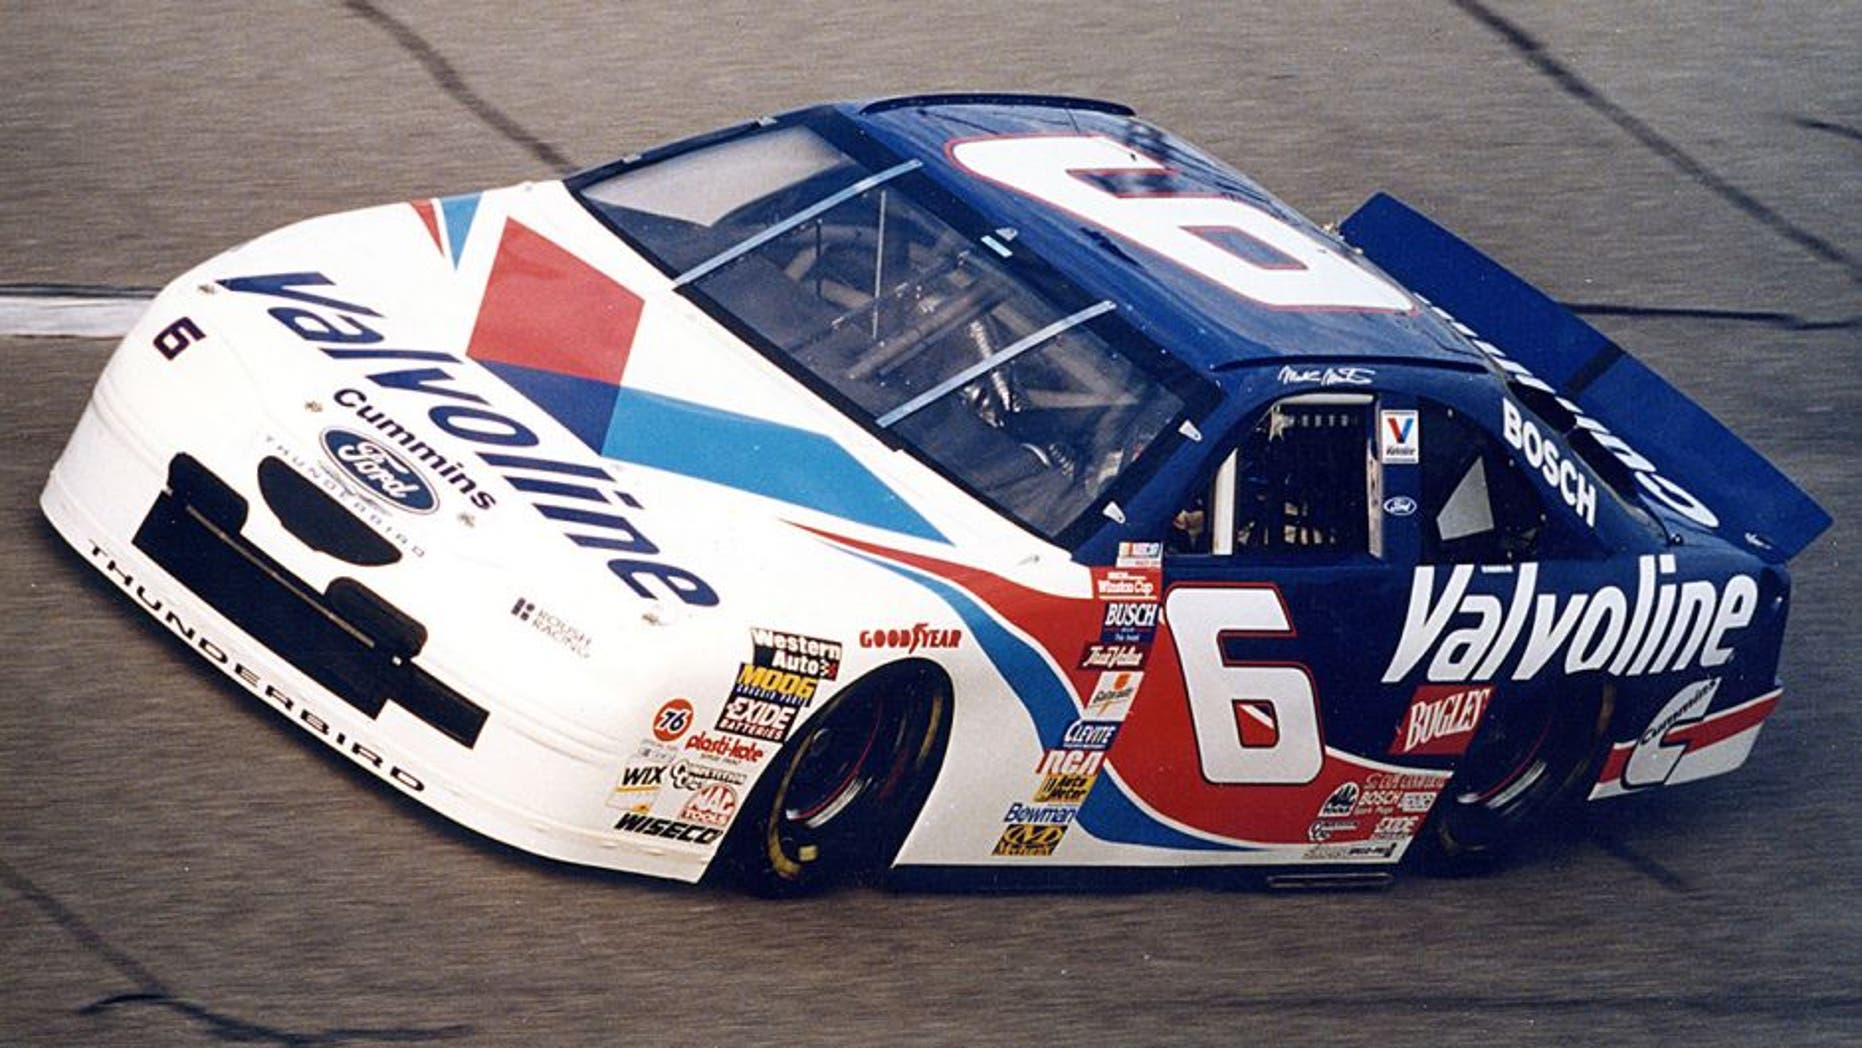 TALLADEGA, AL - MAY 10, 1997: Mark Martin won the 1997 Winston 500 at Talladega in record time due to a caution-free race. It was Martin's first victory since 1995. (Photo by ISC Archives via Getty Images)